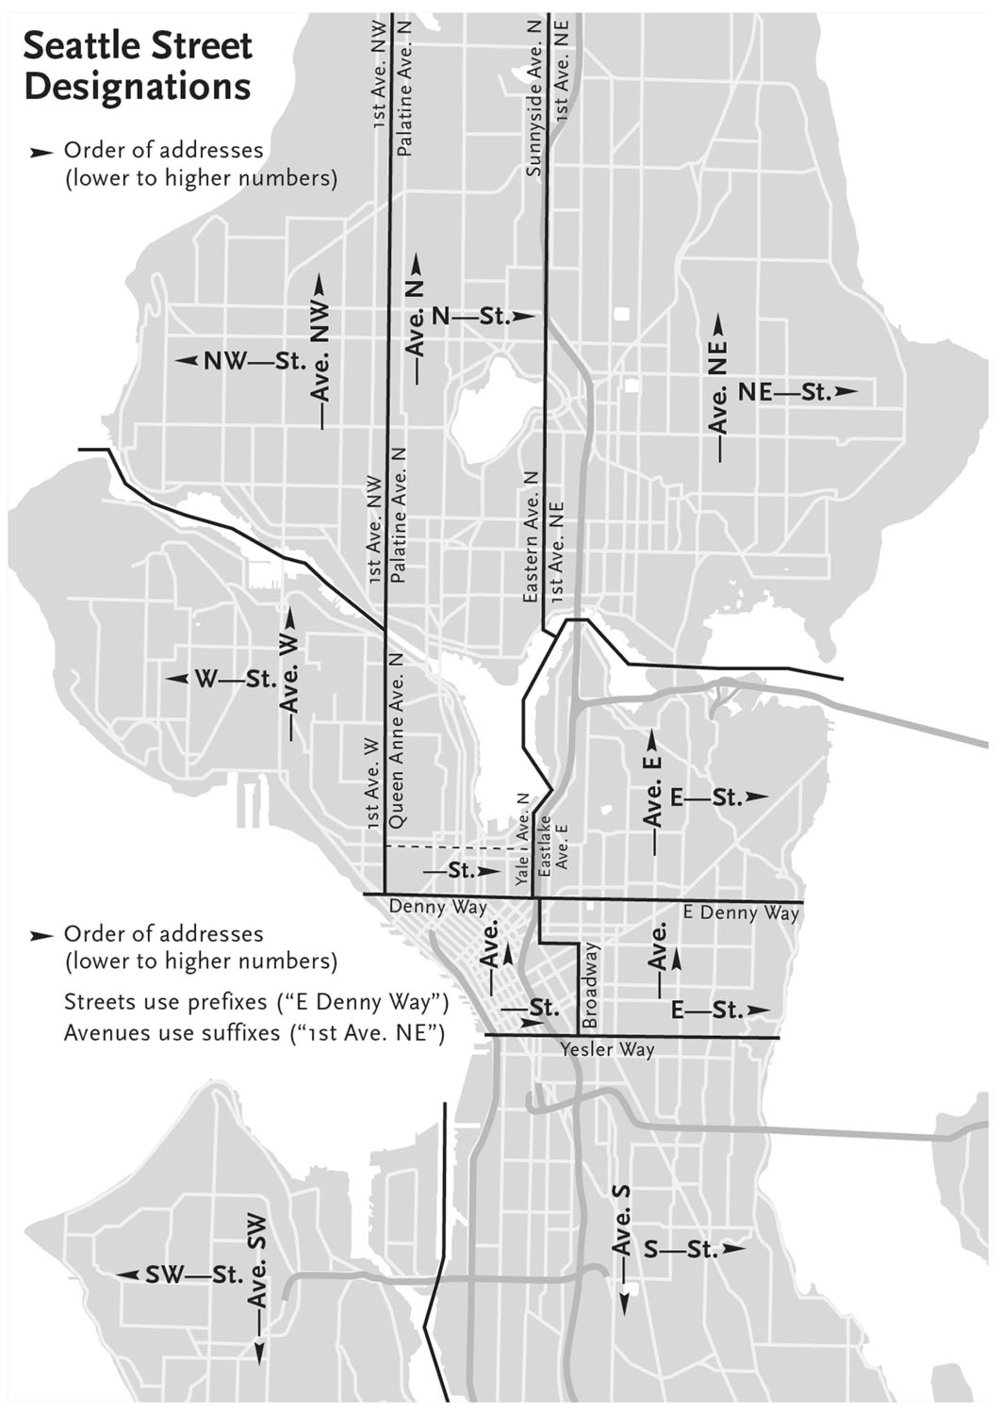 fodors-seattle-address-scheme.jpg